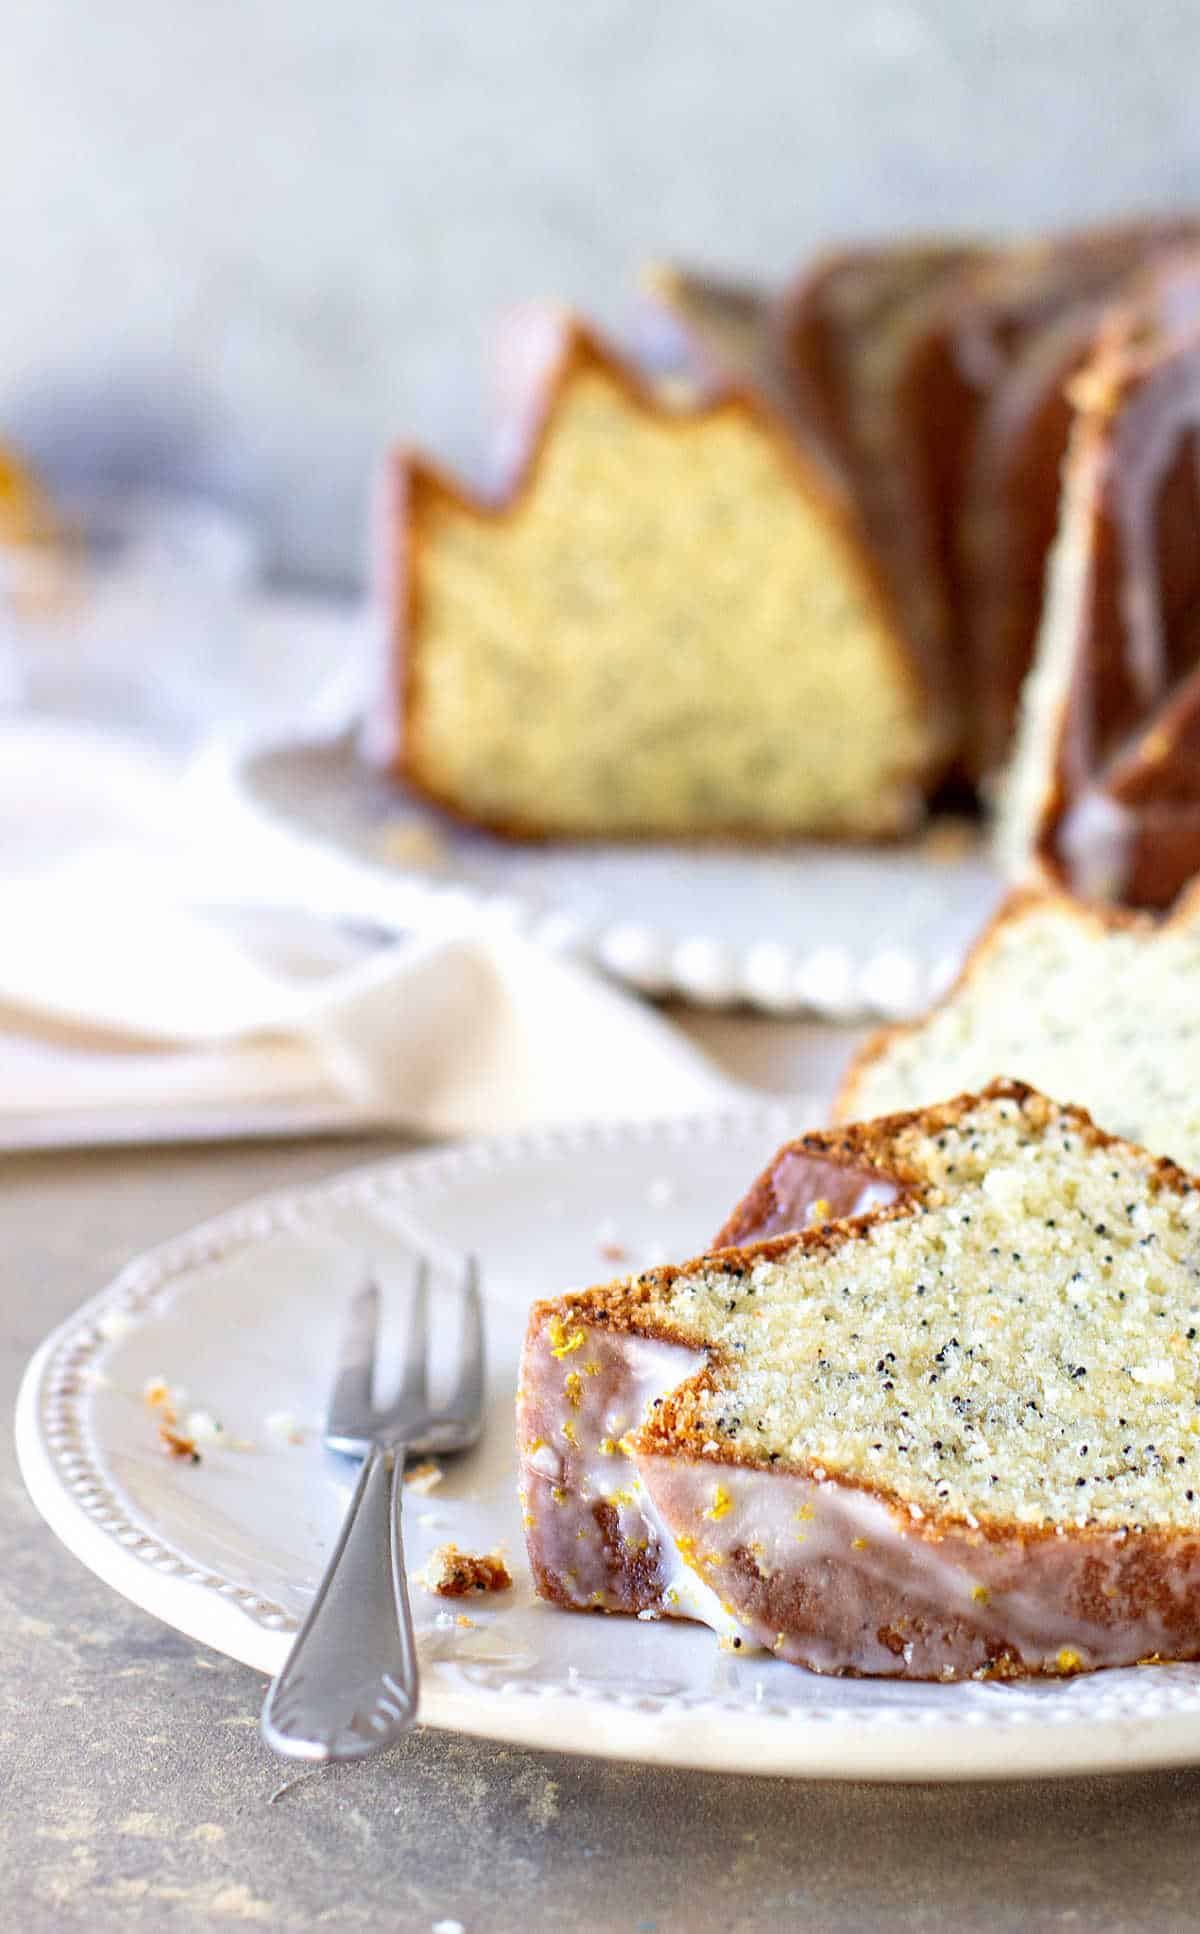 Partial view of lemon poppy seed bundt cake and slice on white plates, a fork and napkin, grey background